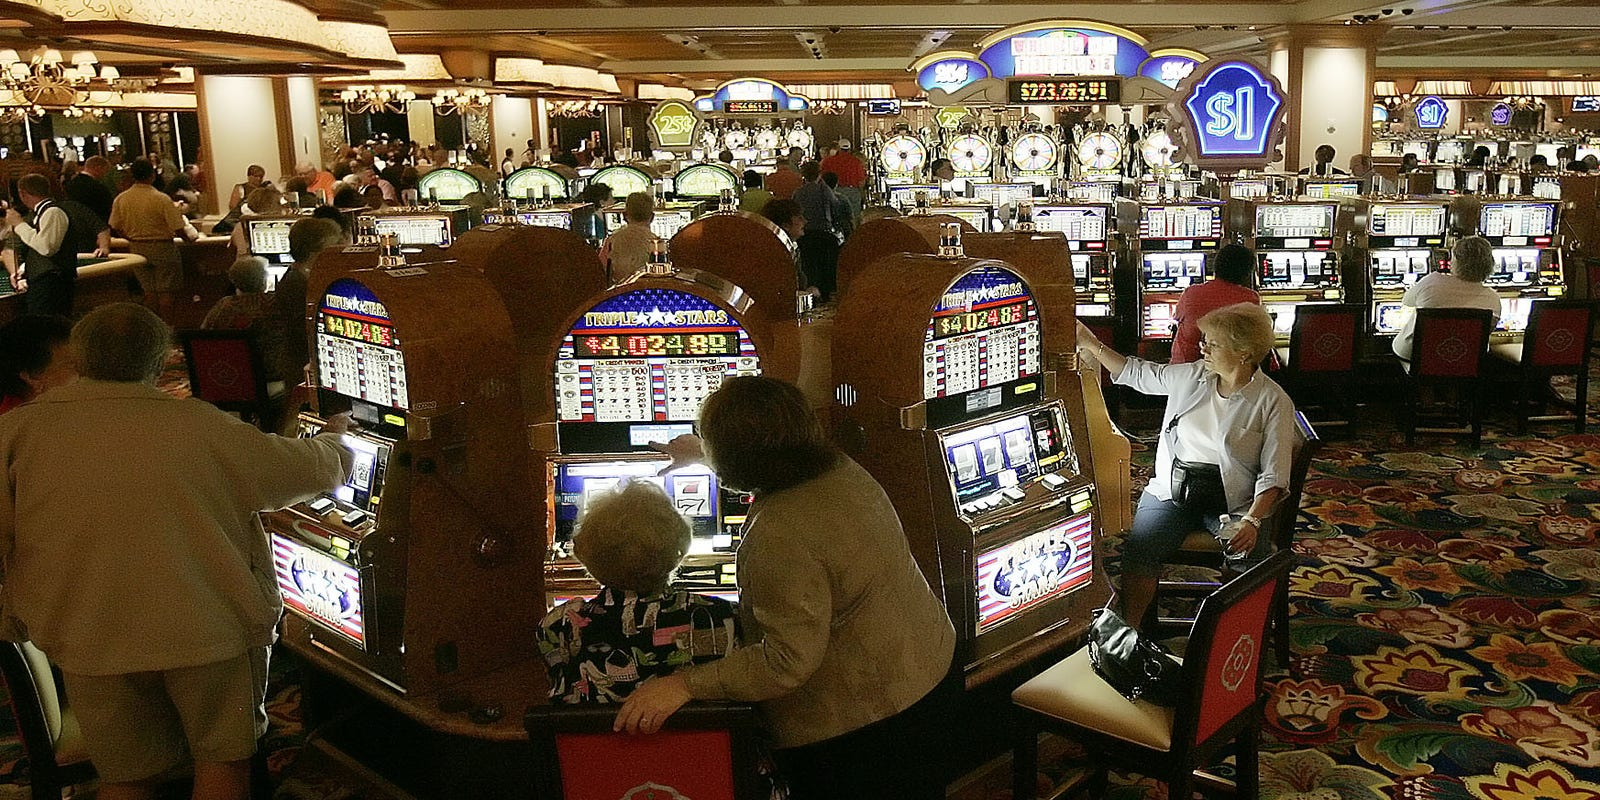 25 things you probably don't know about Coast casinos